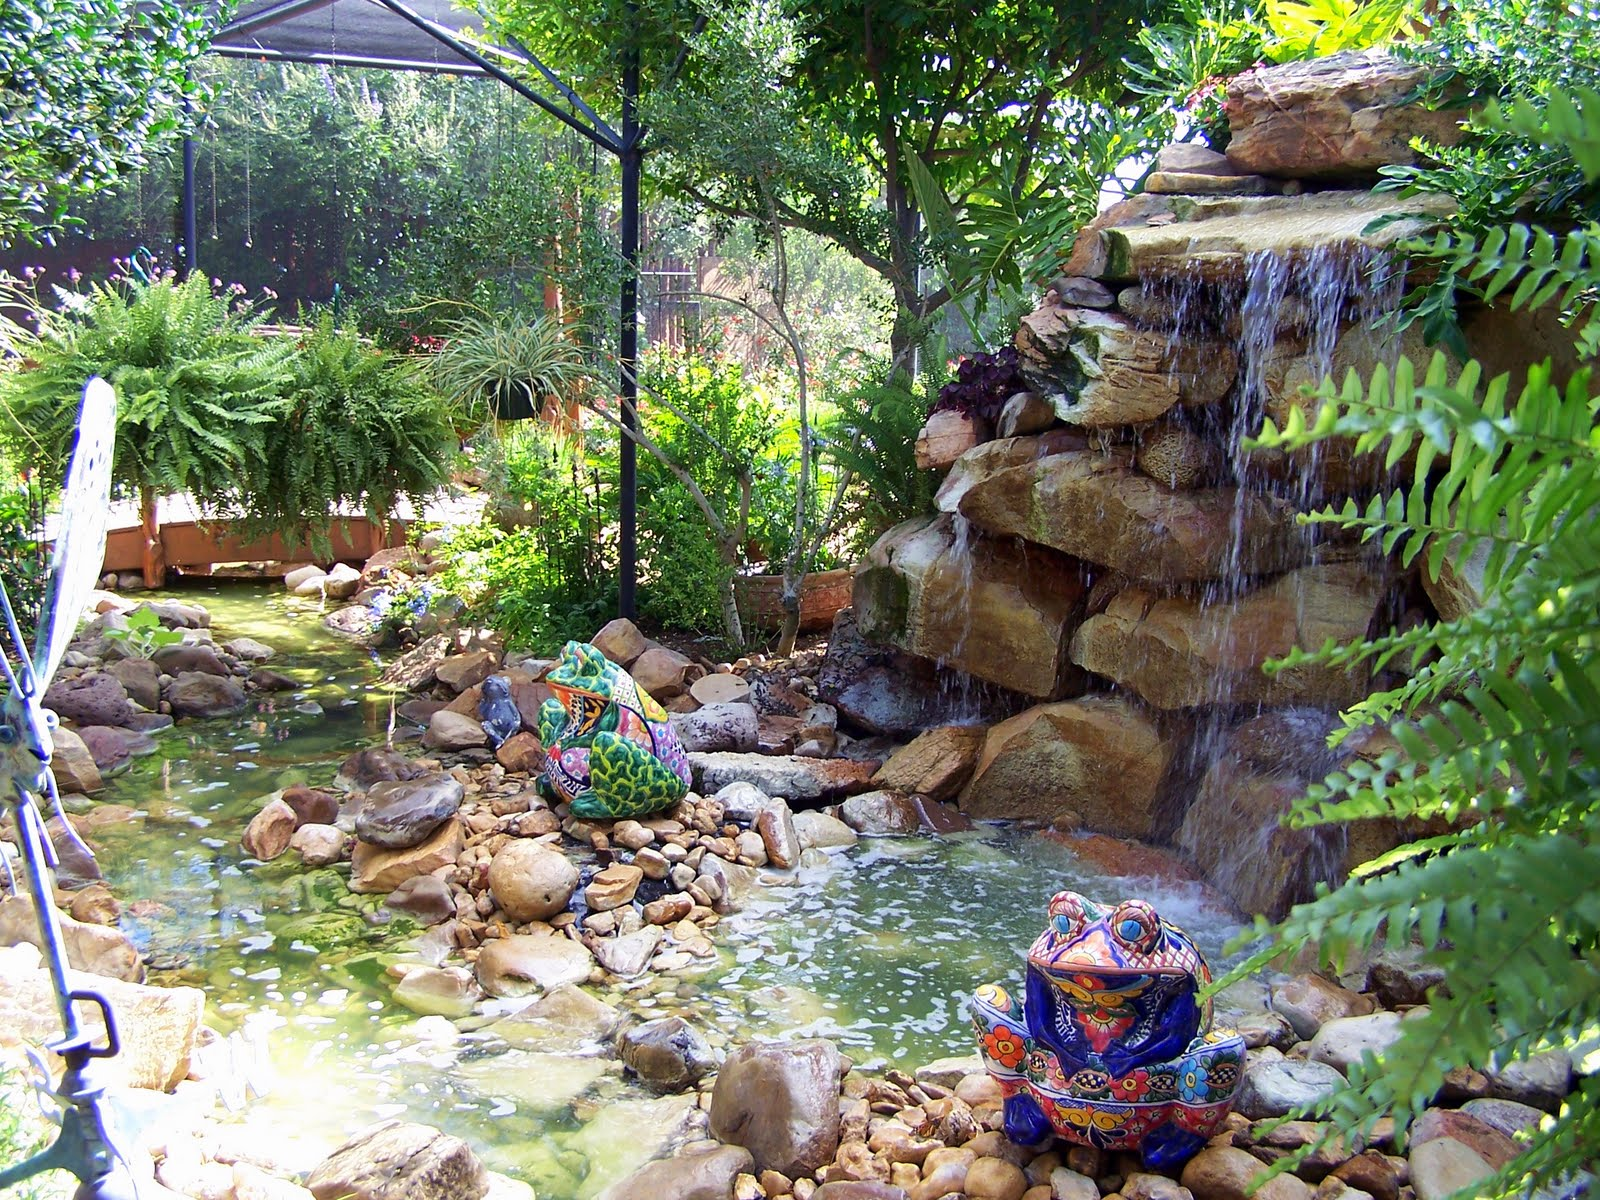 Texasdaisey Creations: Water Gardens